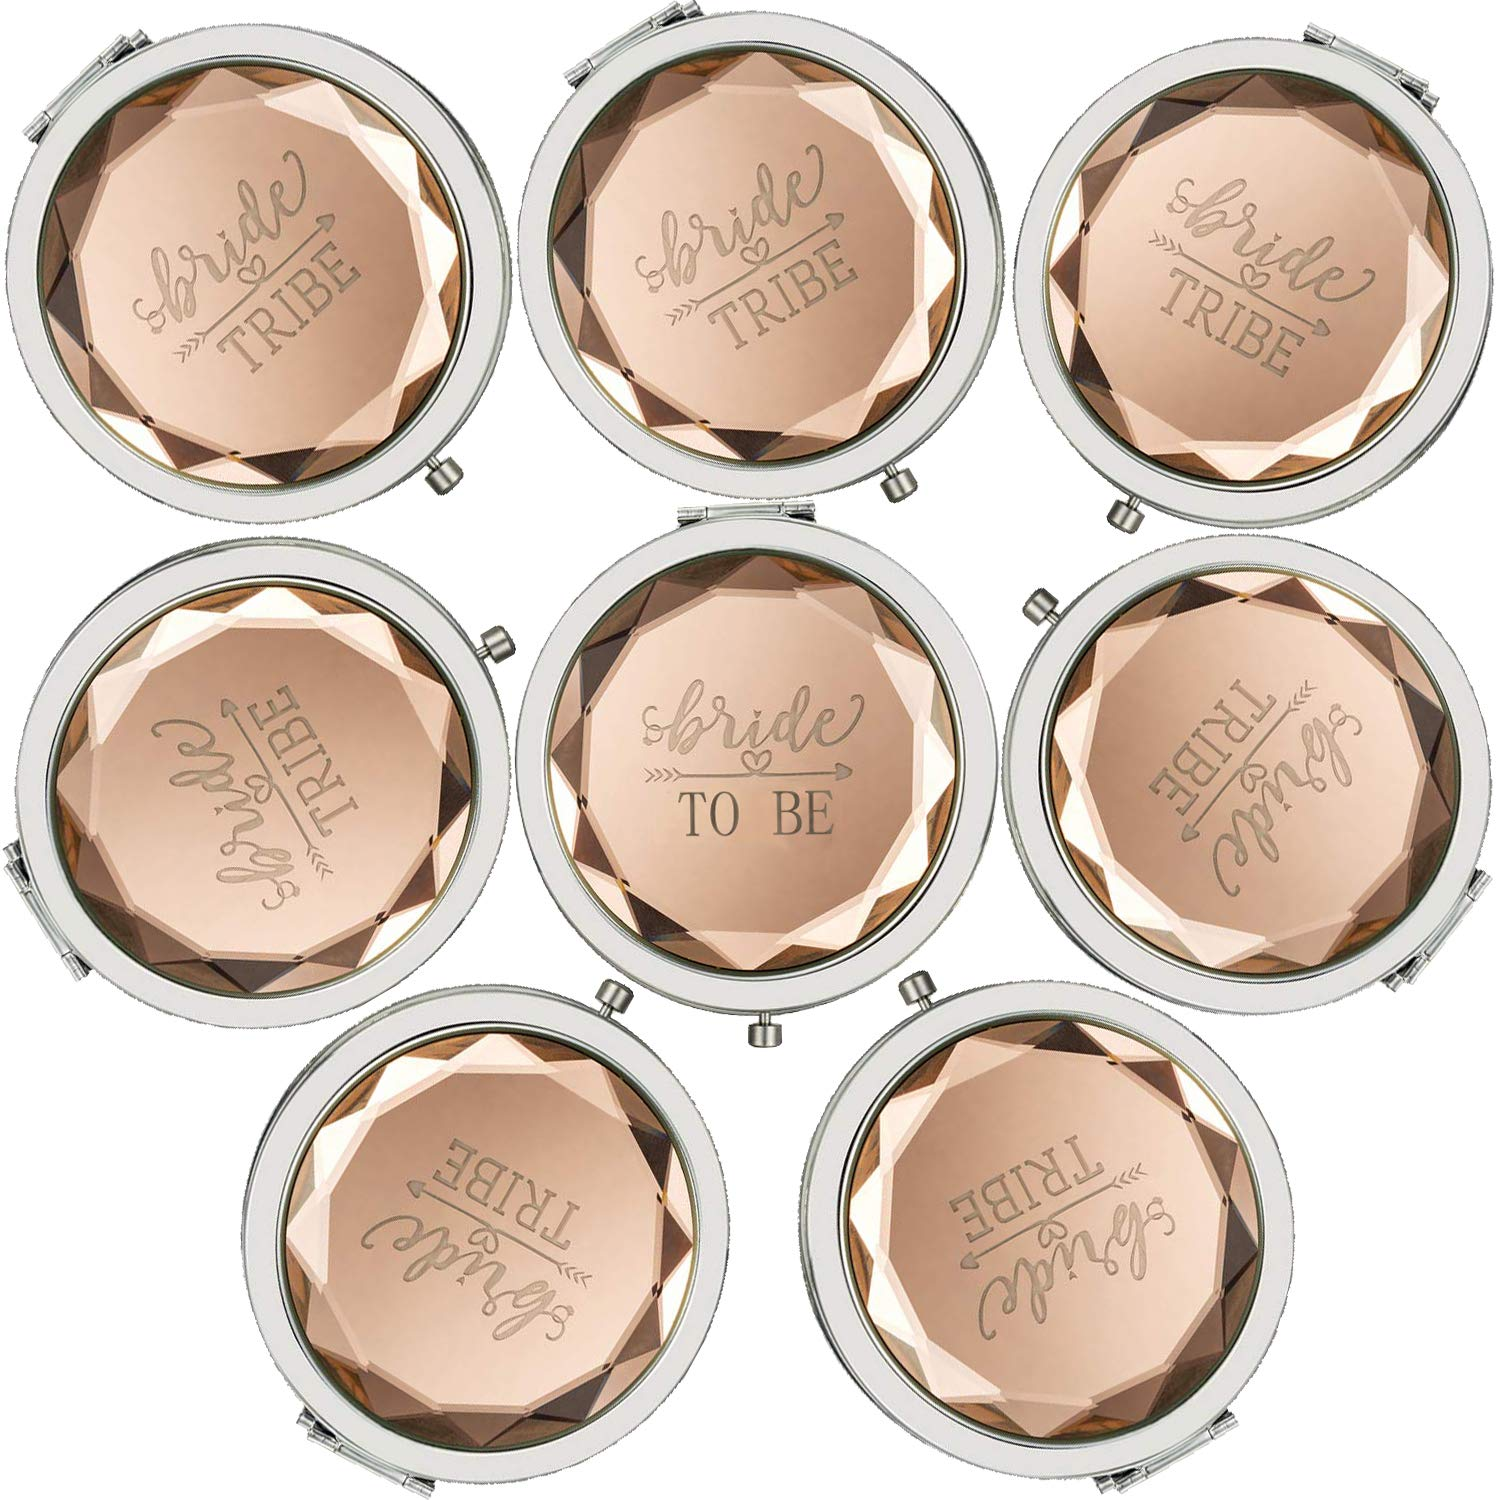 Cuterui Bridesmaid Gifts Bride Tribe Compact Makeup Mirrors for Bachelorette Bridal Shower Gifts Pack of 8,Champagne